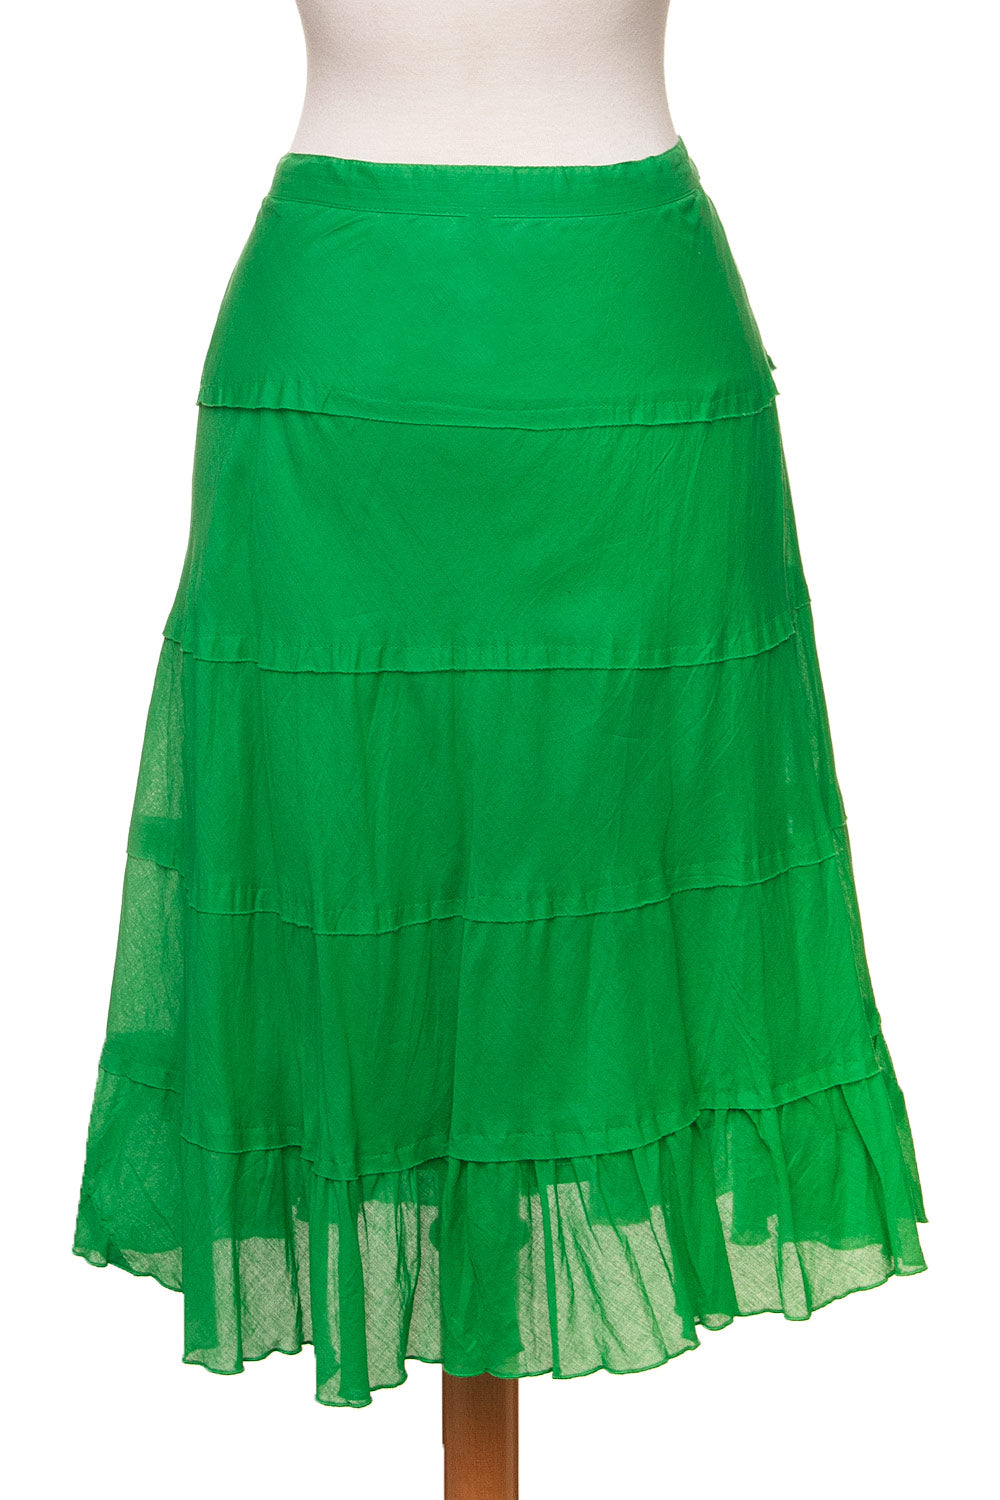 Type 1 Lily Pad Skirt